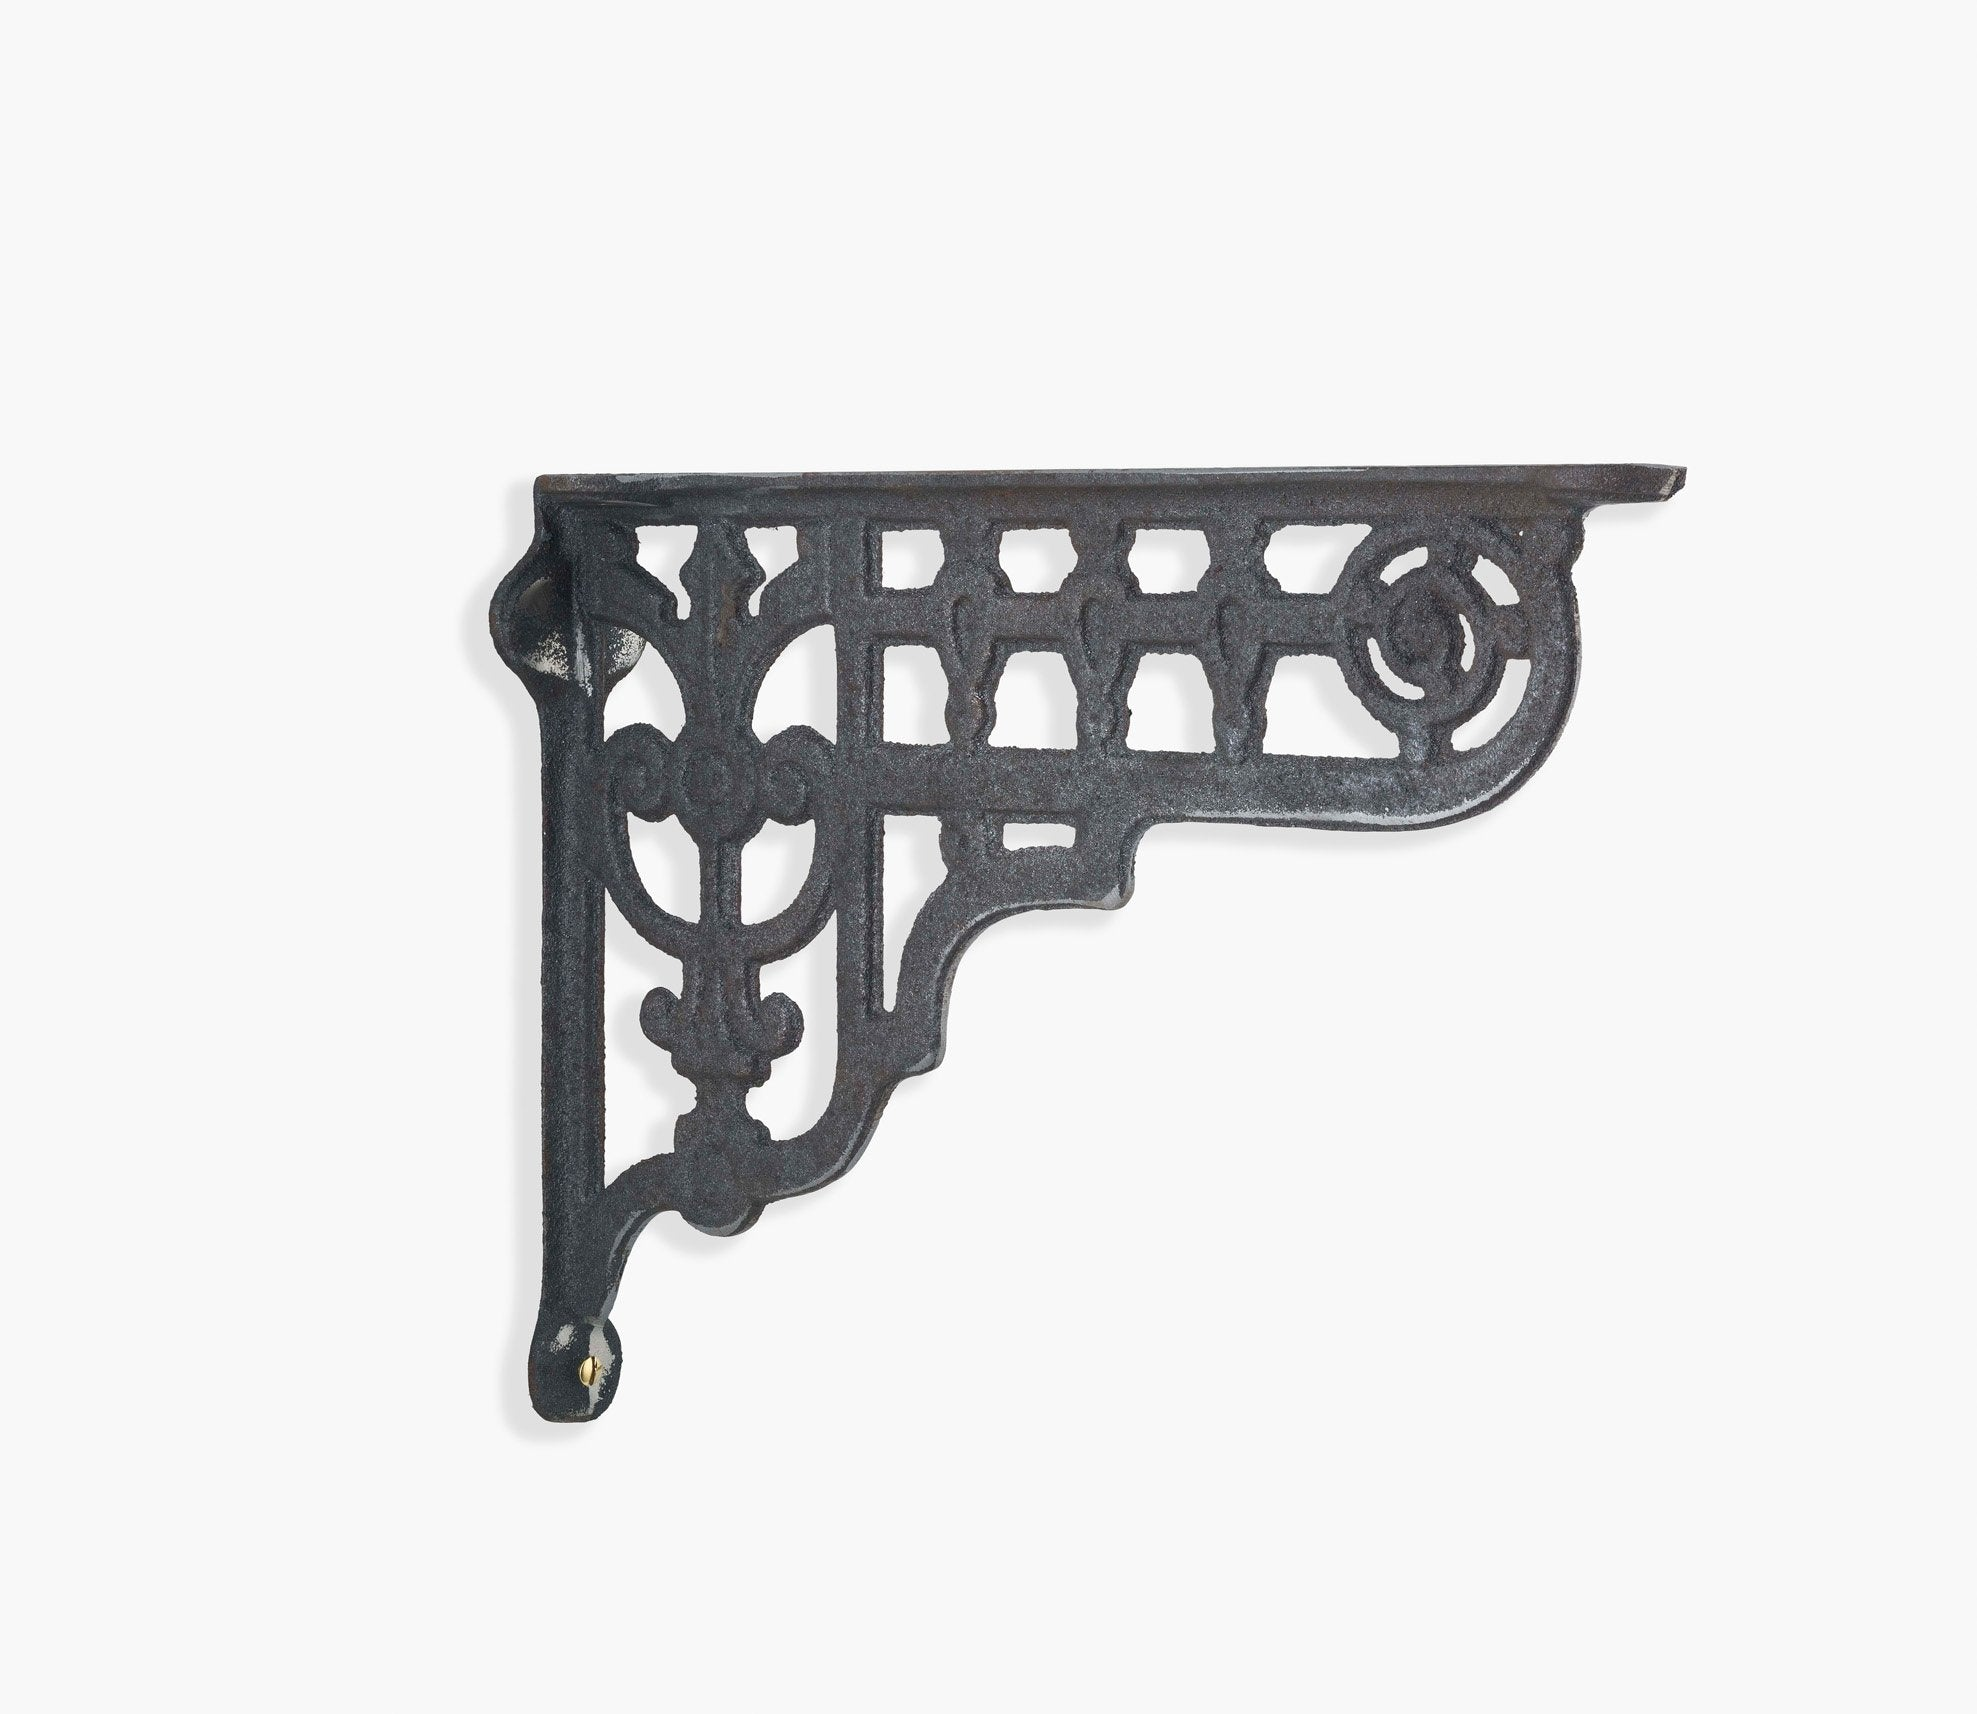 Shelf Bracket 120 Product Image 1